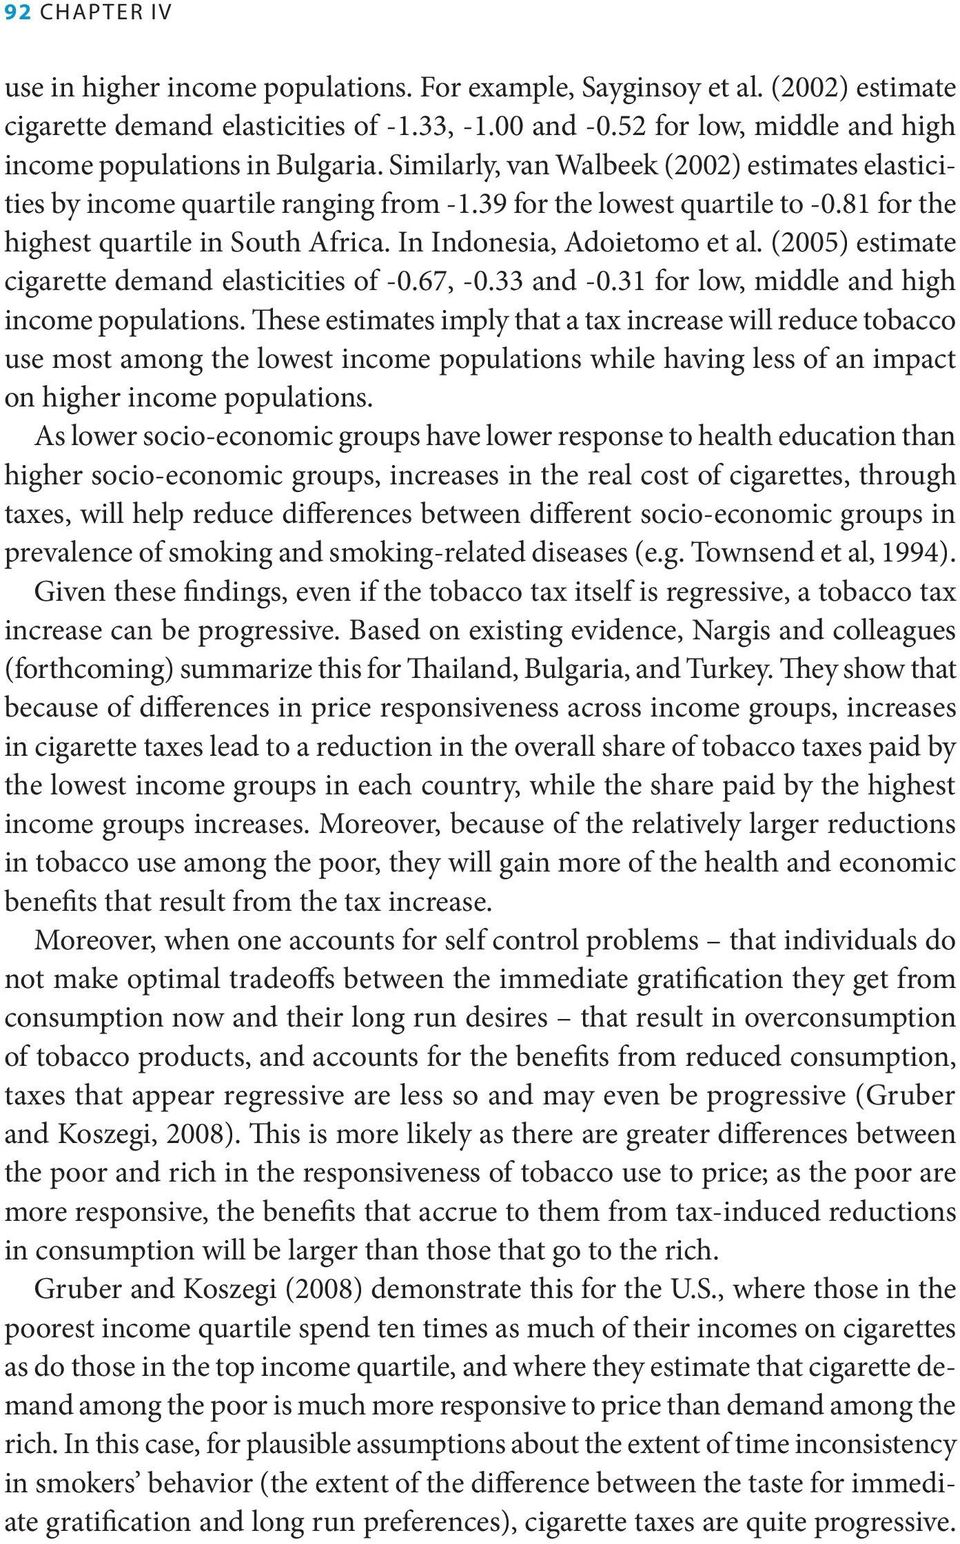 81 for the highest quartile in South Africa. In Indonesia, Adoietomo et al. (2005) estimate cigarette demand elasticities of -0.67, -0.33 and -0.31 for low, middle and high income populations.